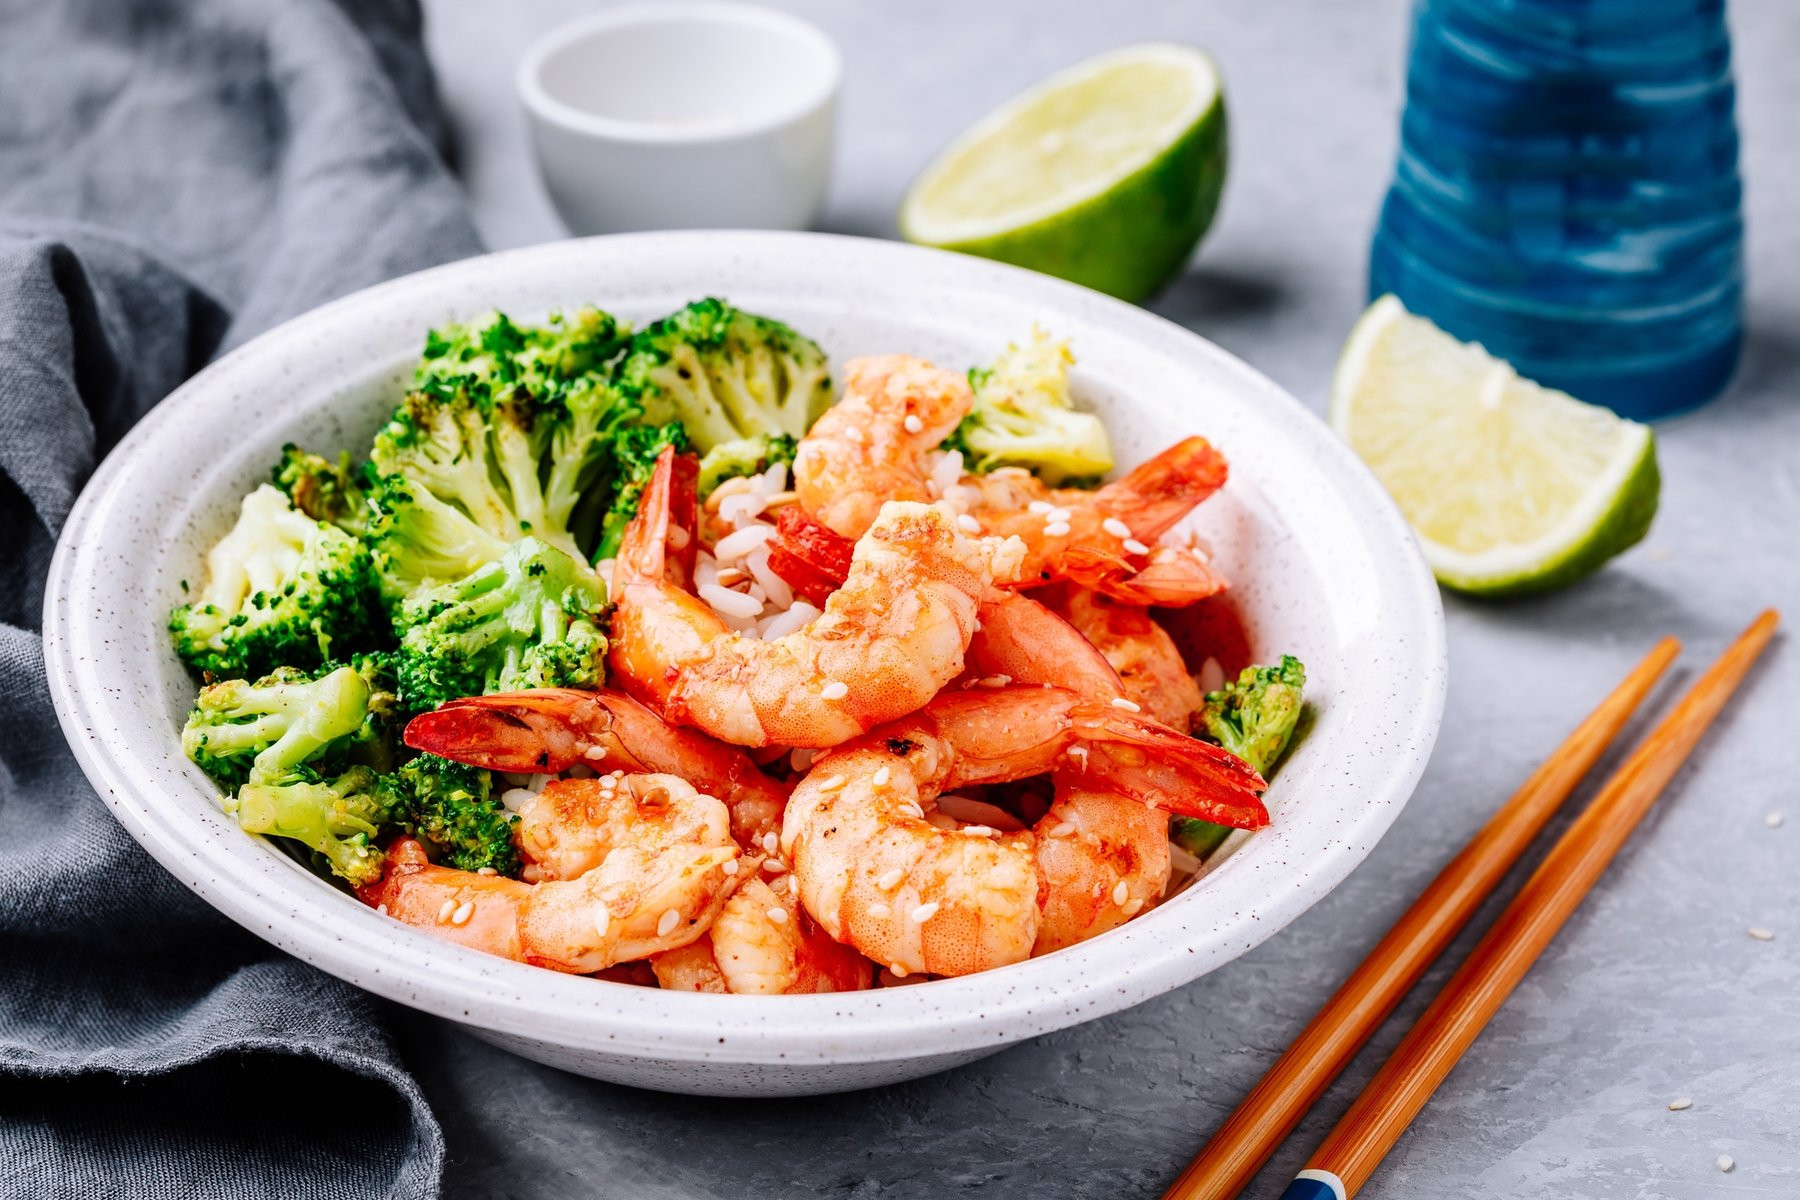 Broccoli Shrimp Keto  Keto Shrimp and Broccoli Bowl